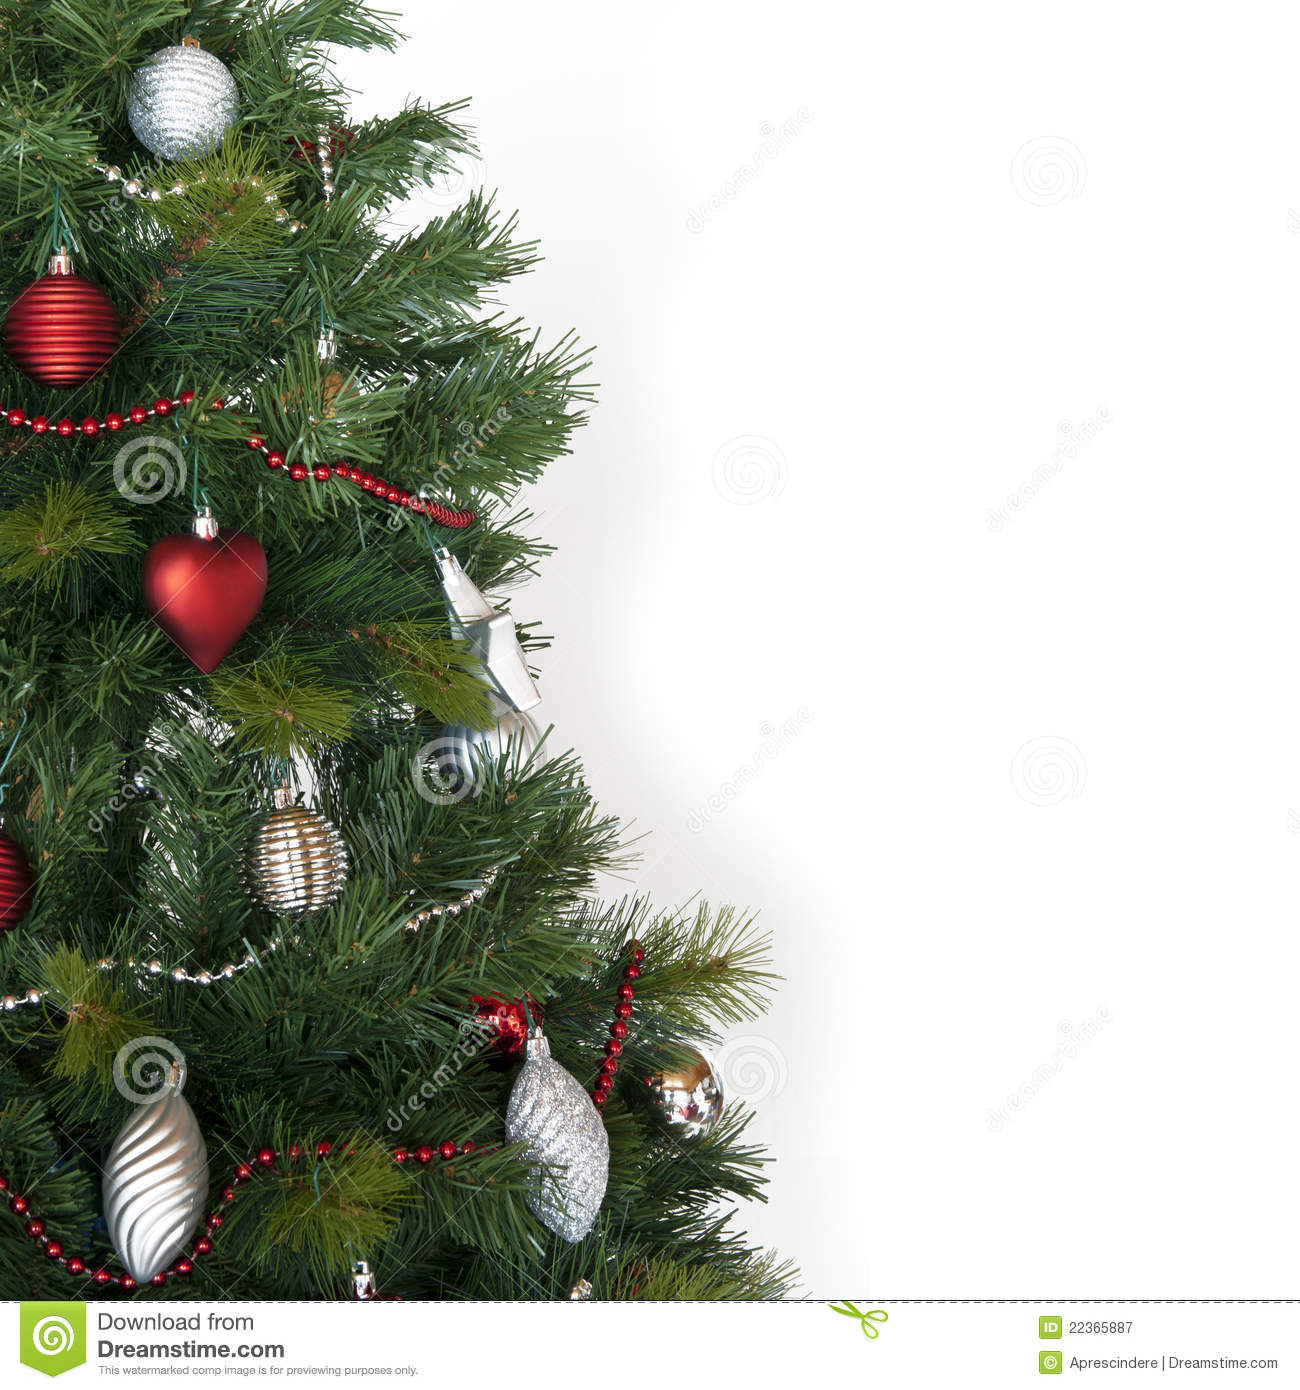 Christmas tree with decoration, isolated on white - for christmas card ...: www.dreamstime.com/royalty-free-stock-photography-christmas-tree...